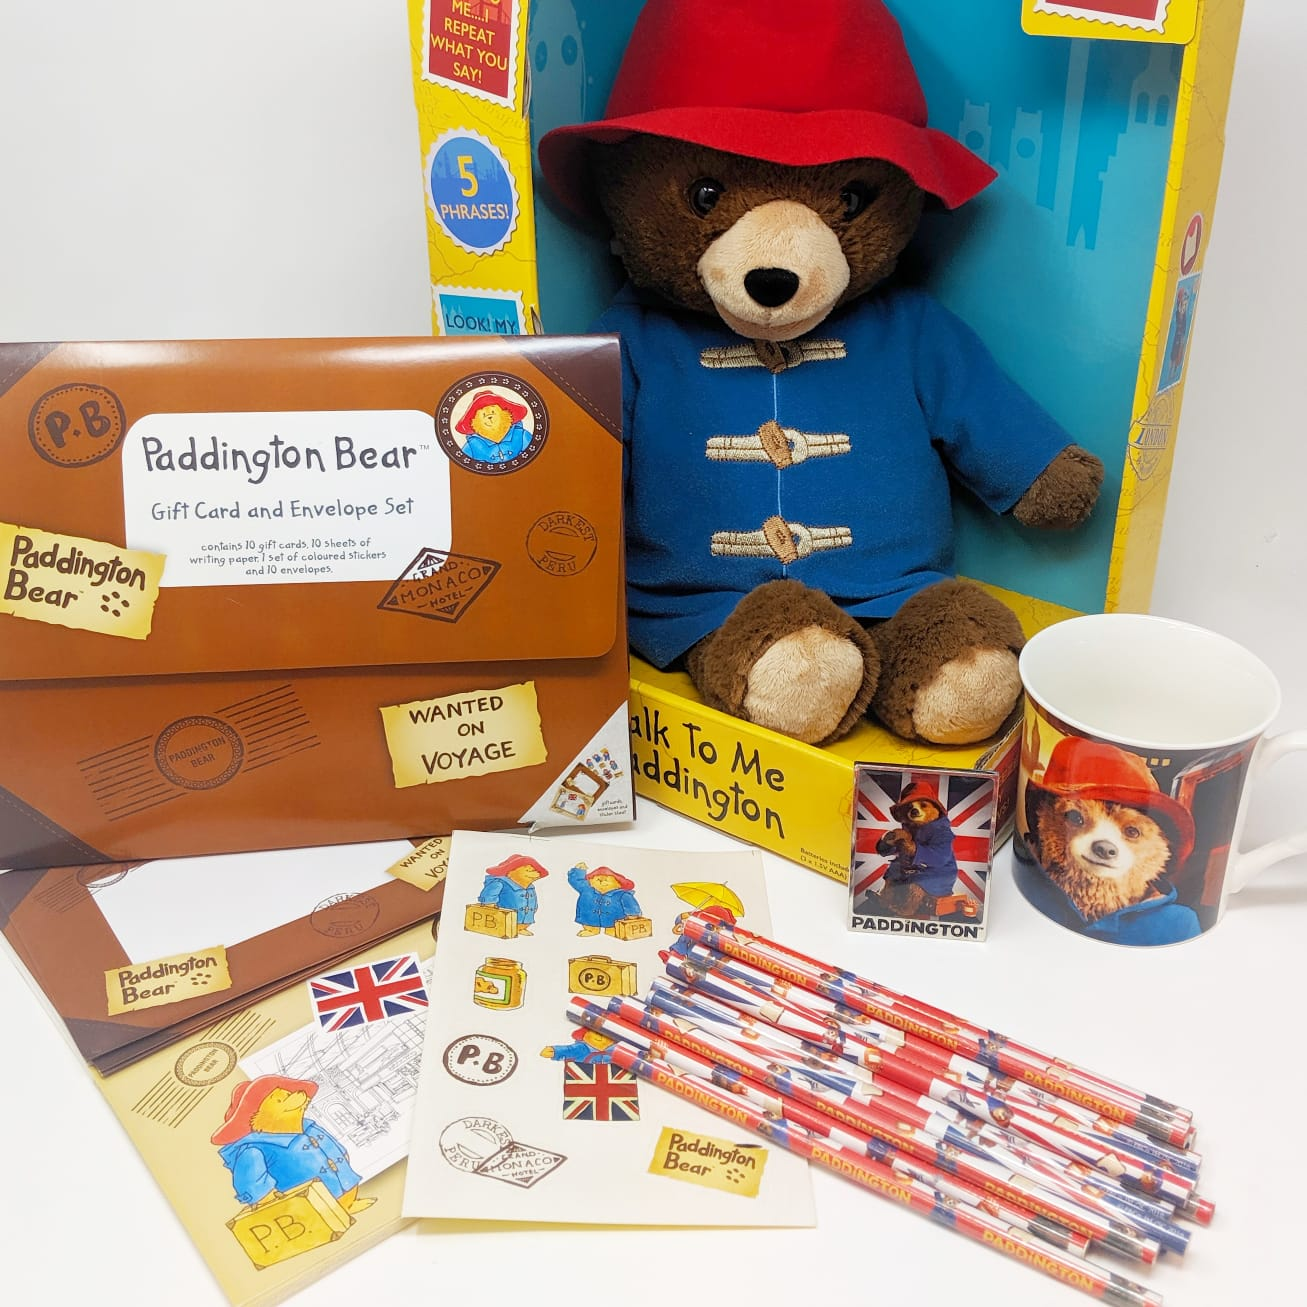 Buy Paddington Bear Gifts Online at RetroStyler.com